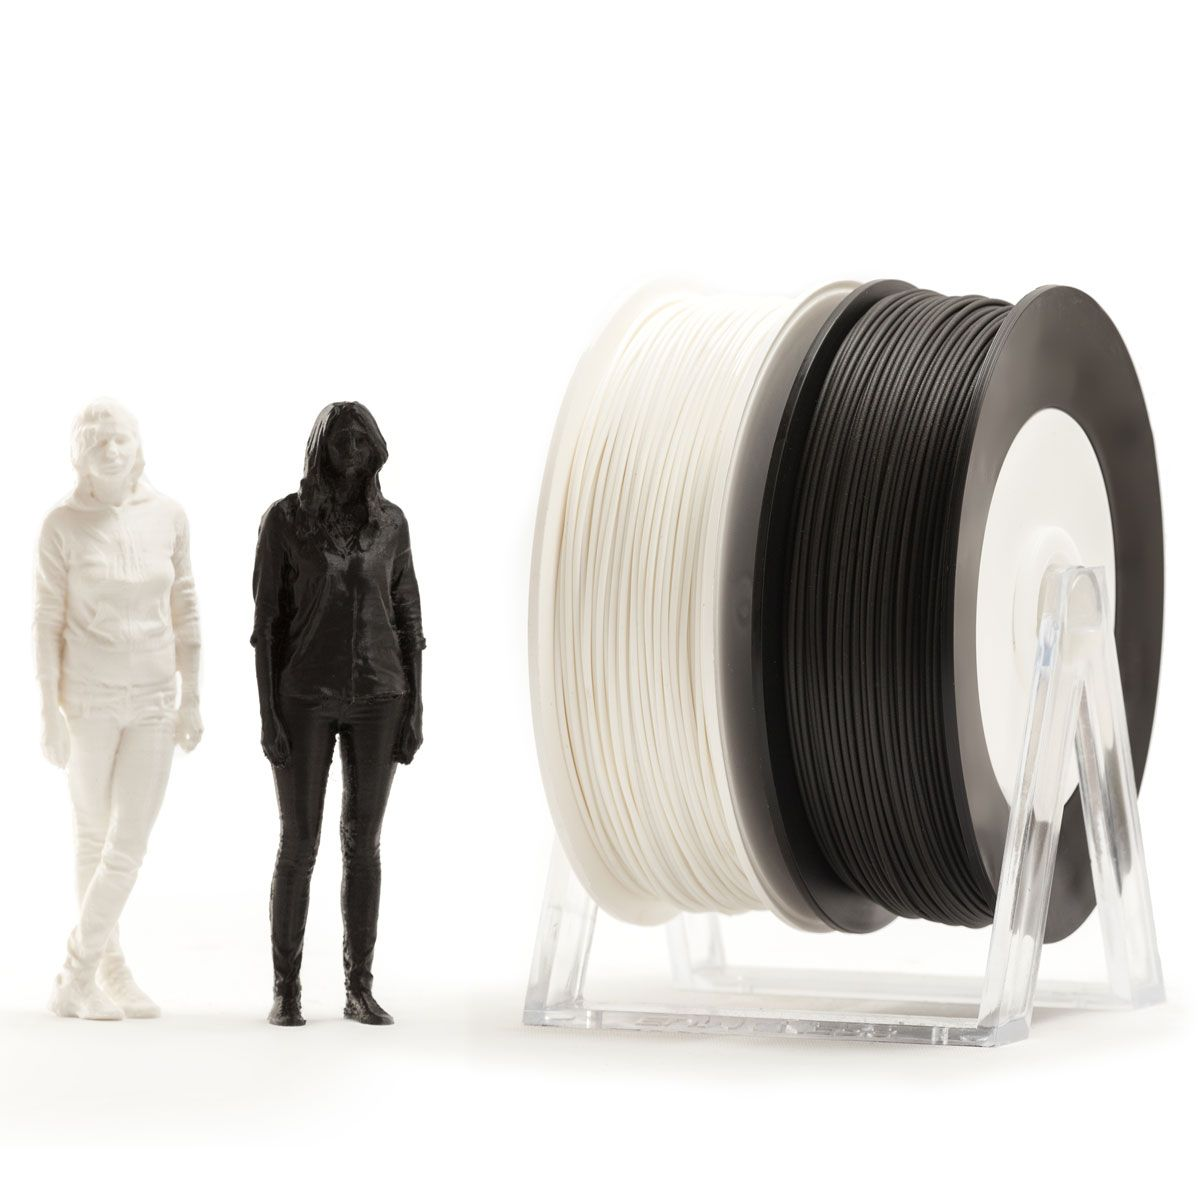 Pair of PLA spools: Black and White